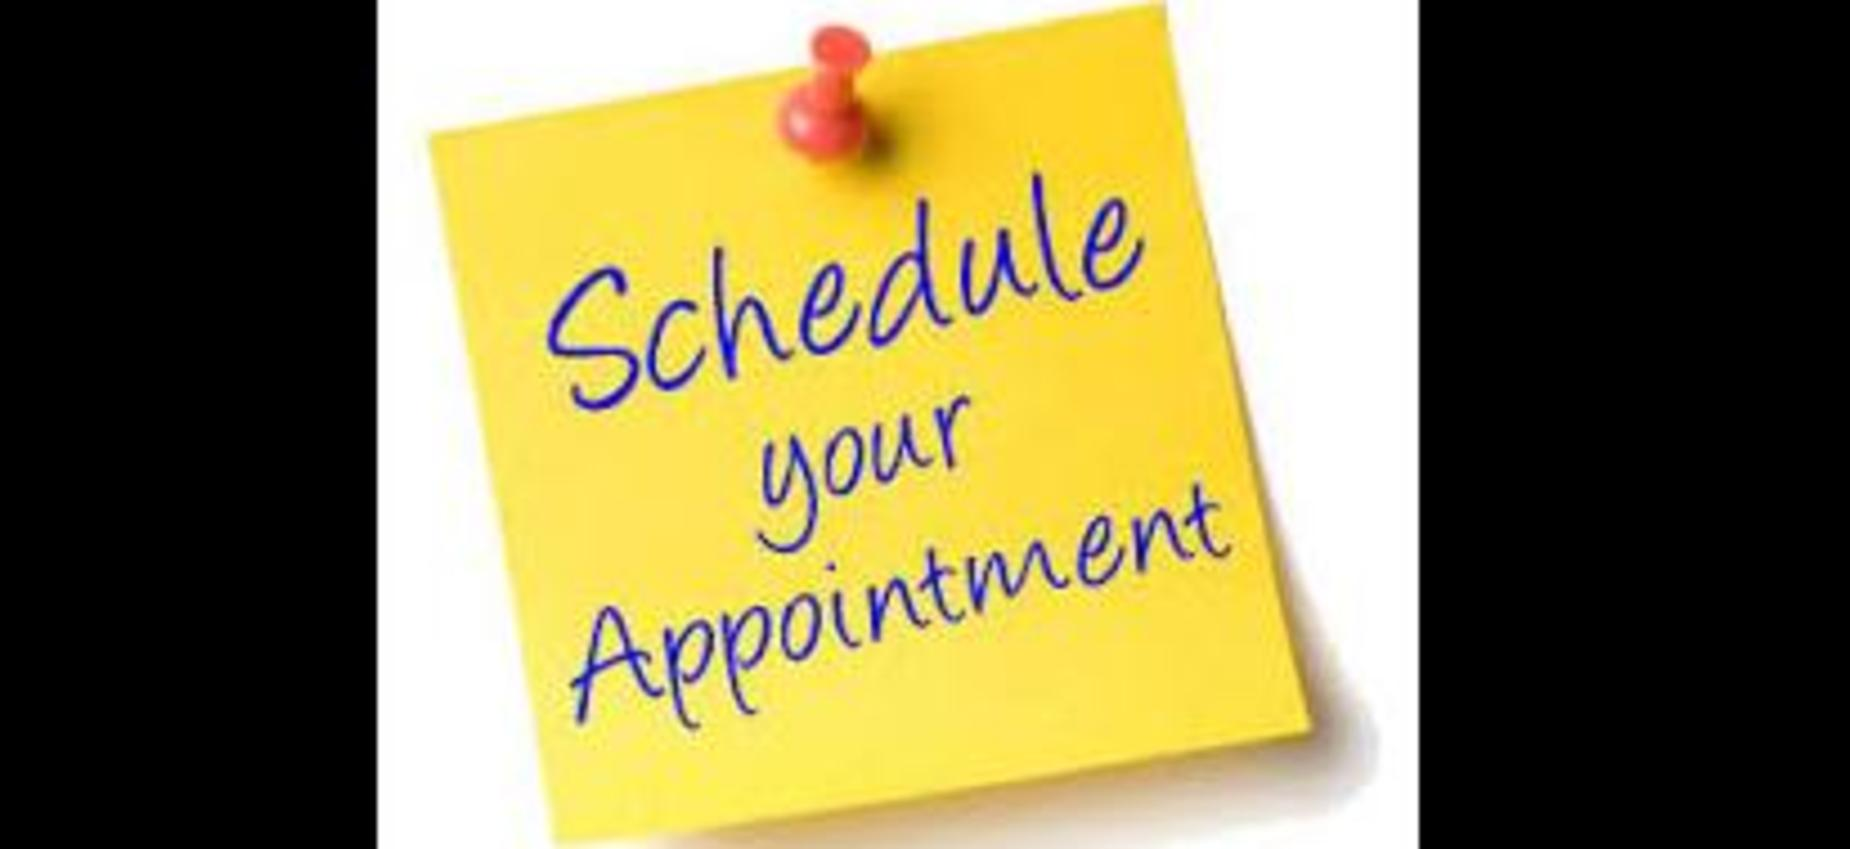 guidance appointment info